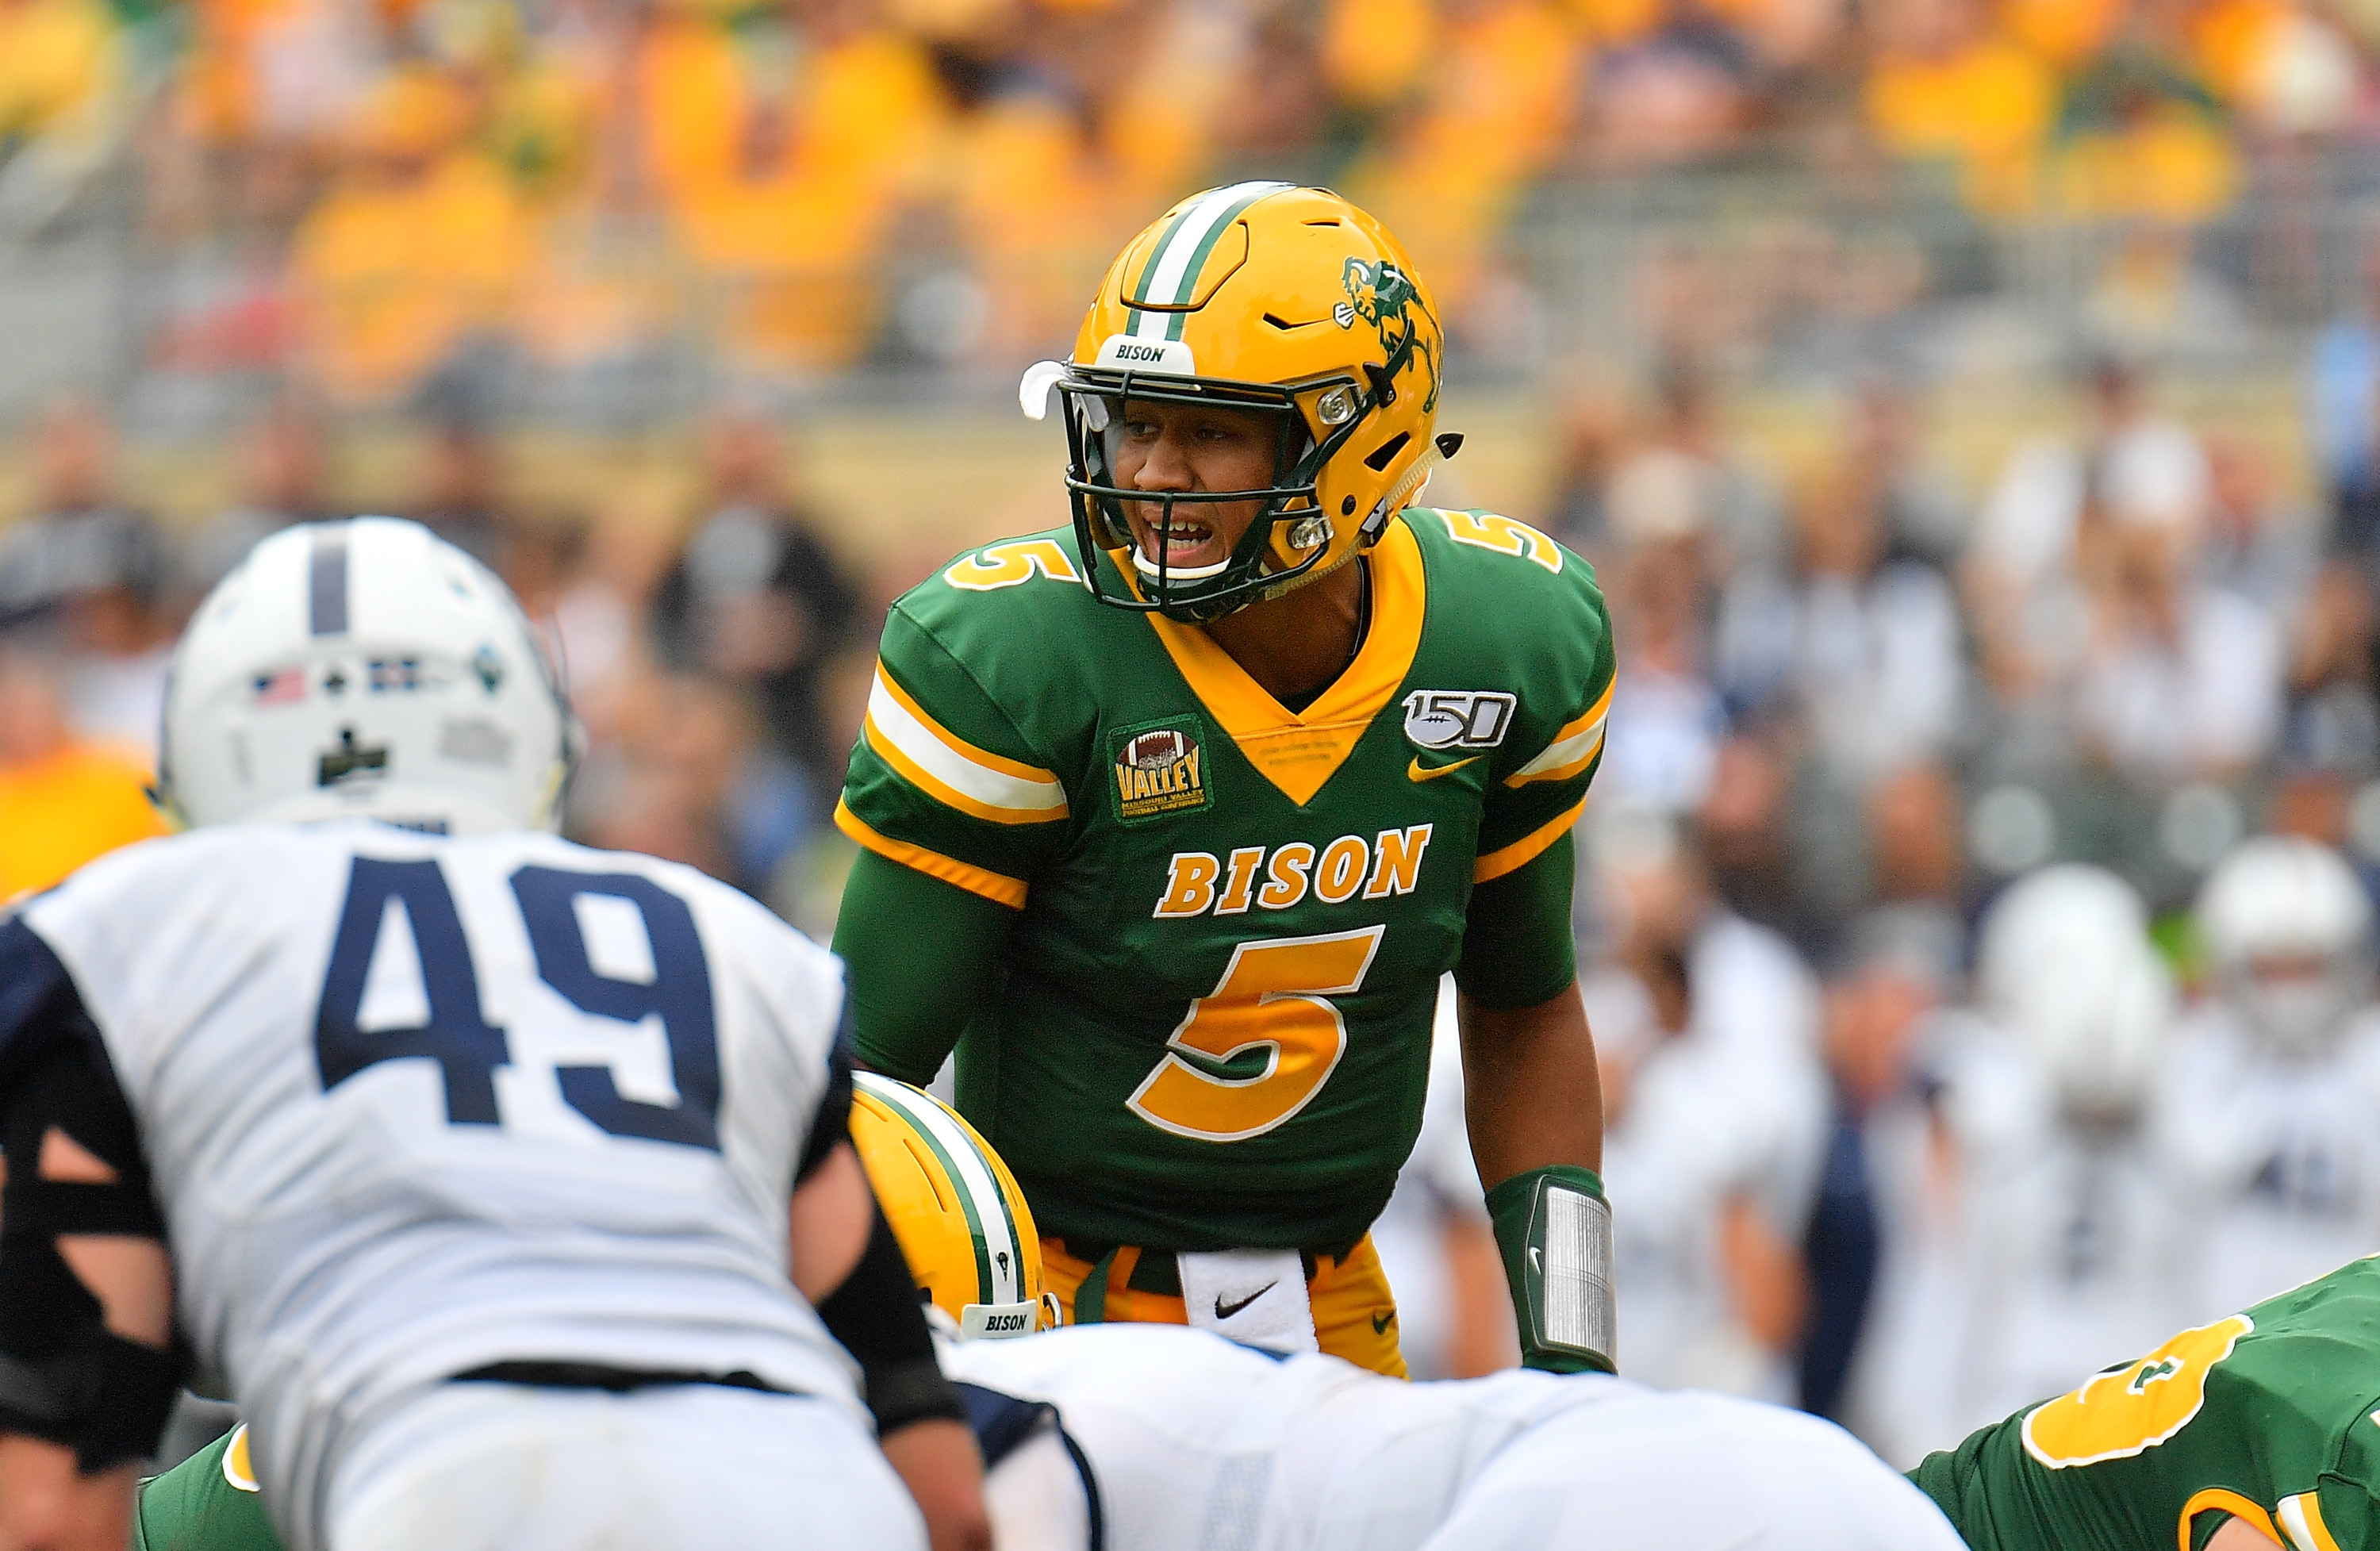 Quarterback Trey Lance #5 of the North Dakota State Bison calls a play during his team's game against the Butler Bulldogs at Target Field on August 31, 2019 in Minneapolis, Minnesota.